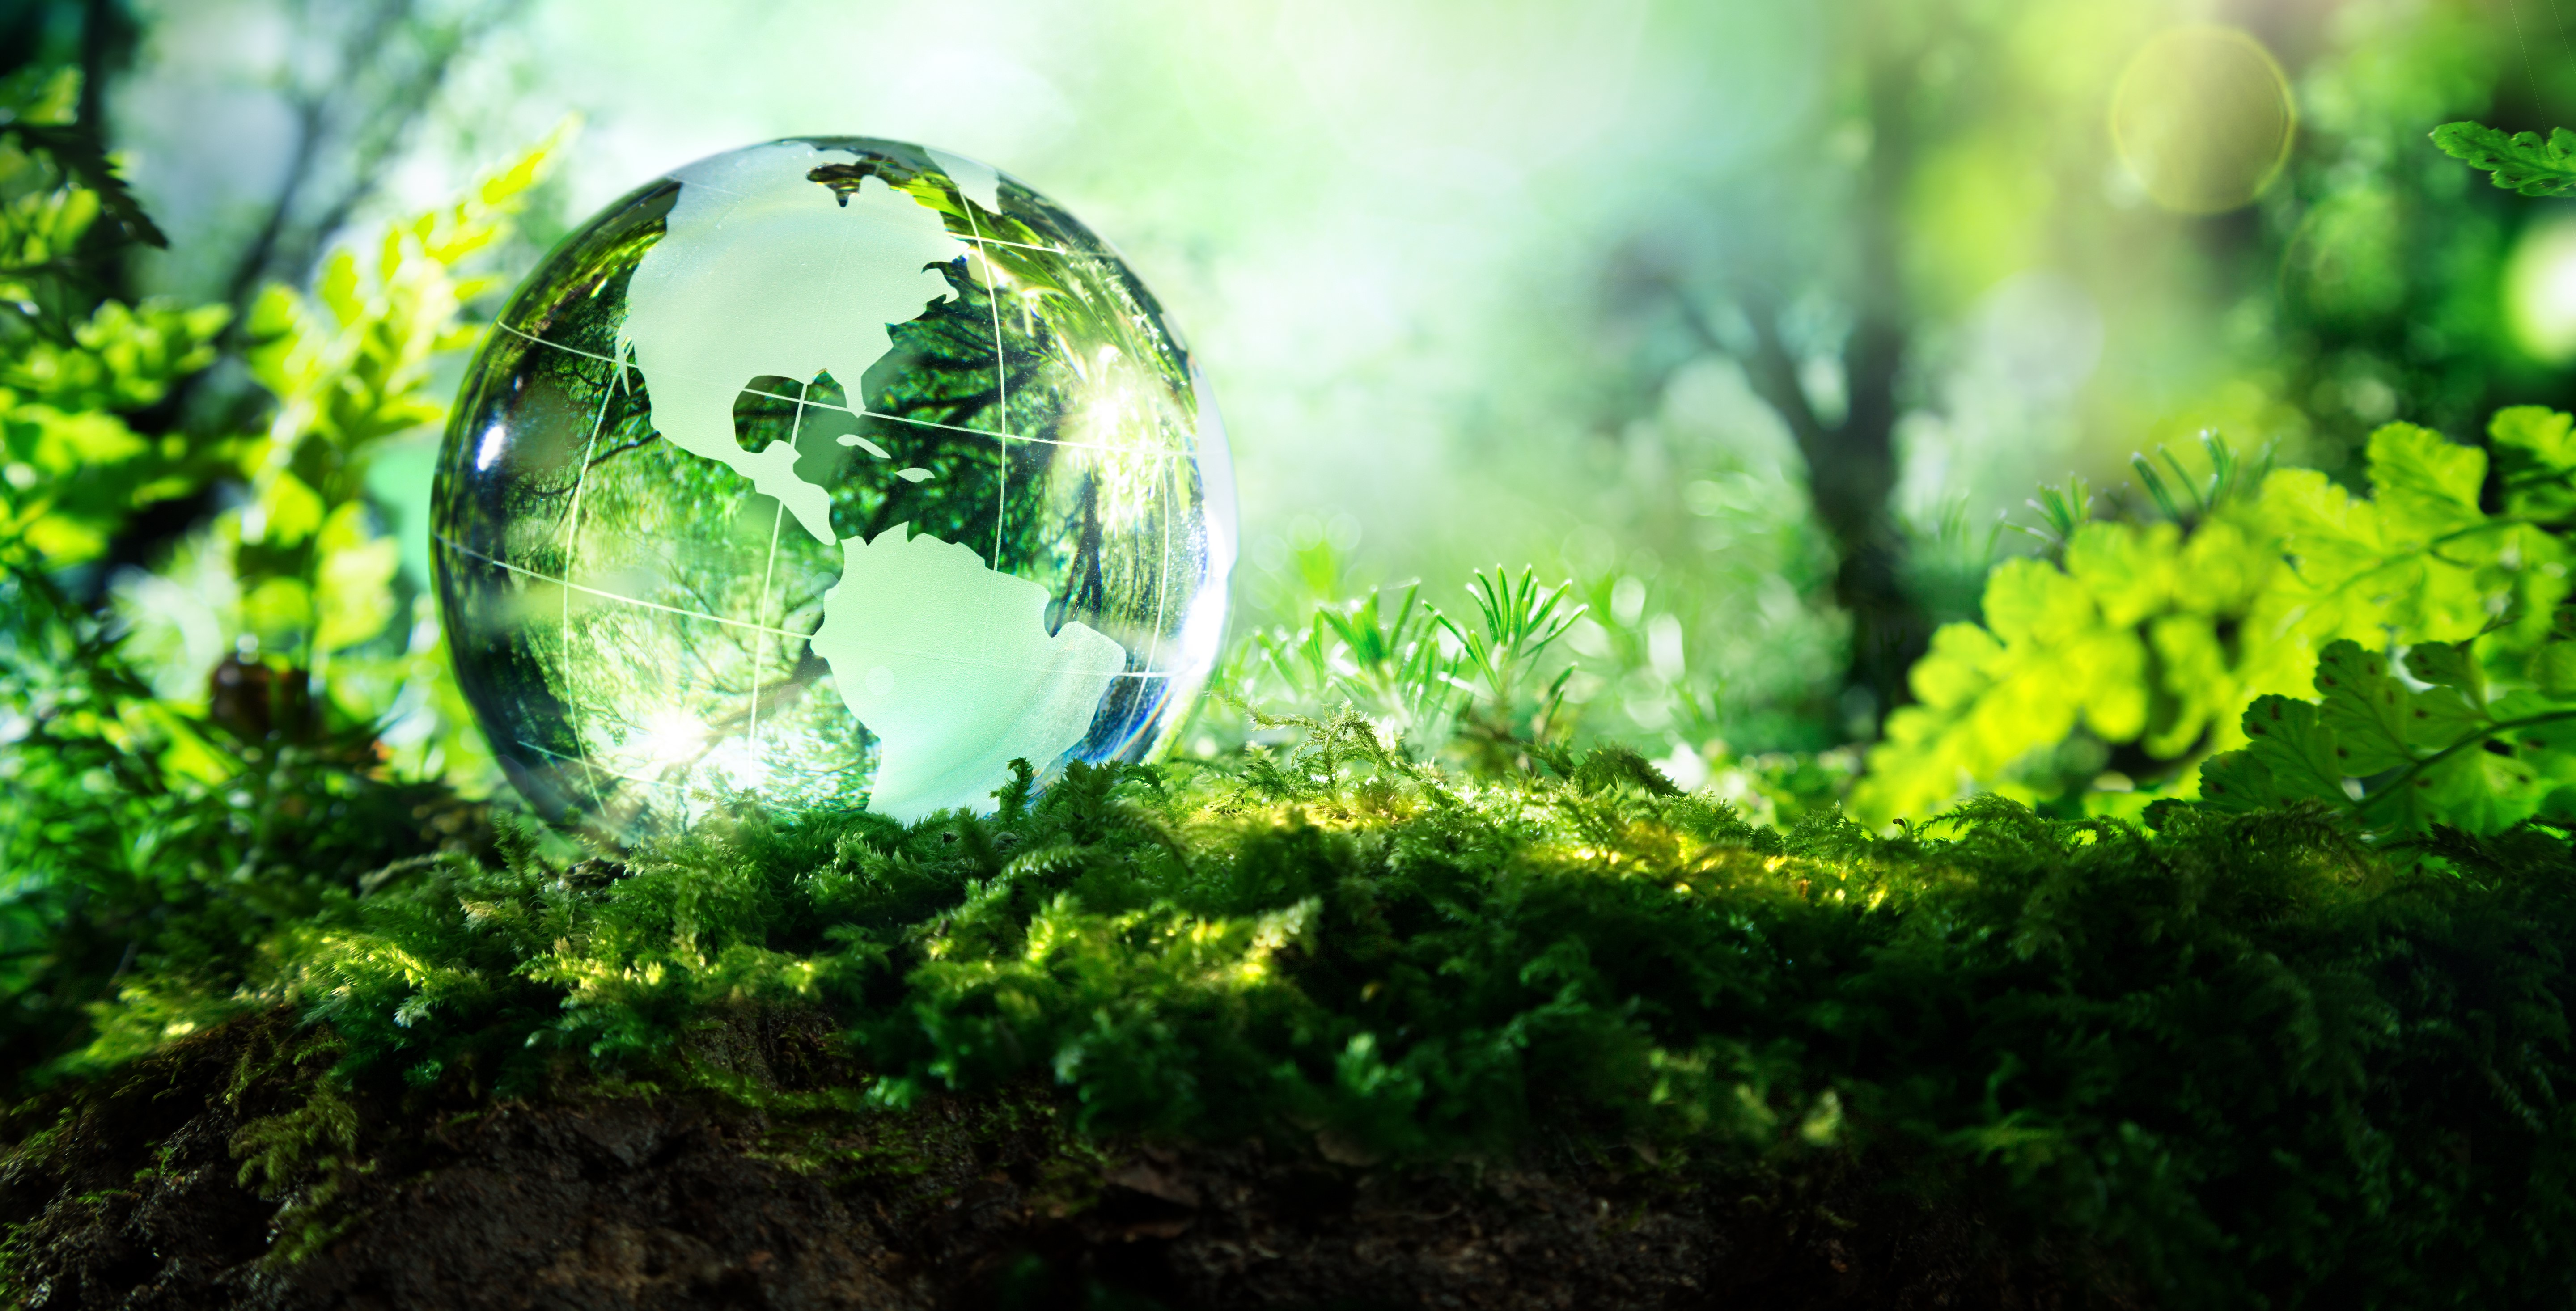 tiny transparent globe of earth sits in greenery